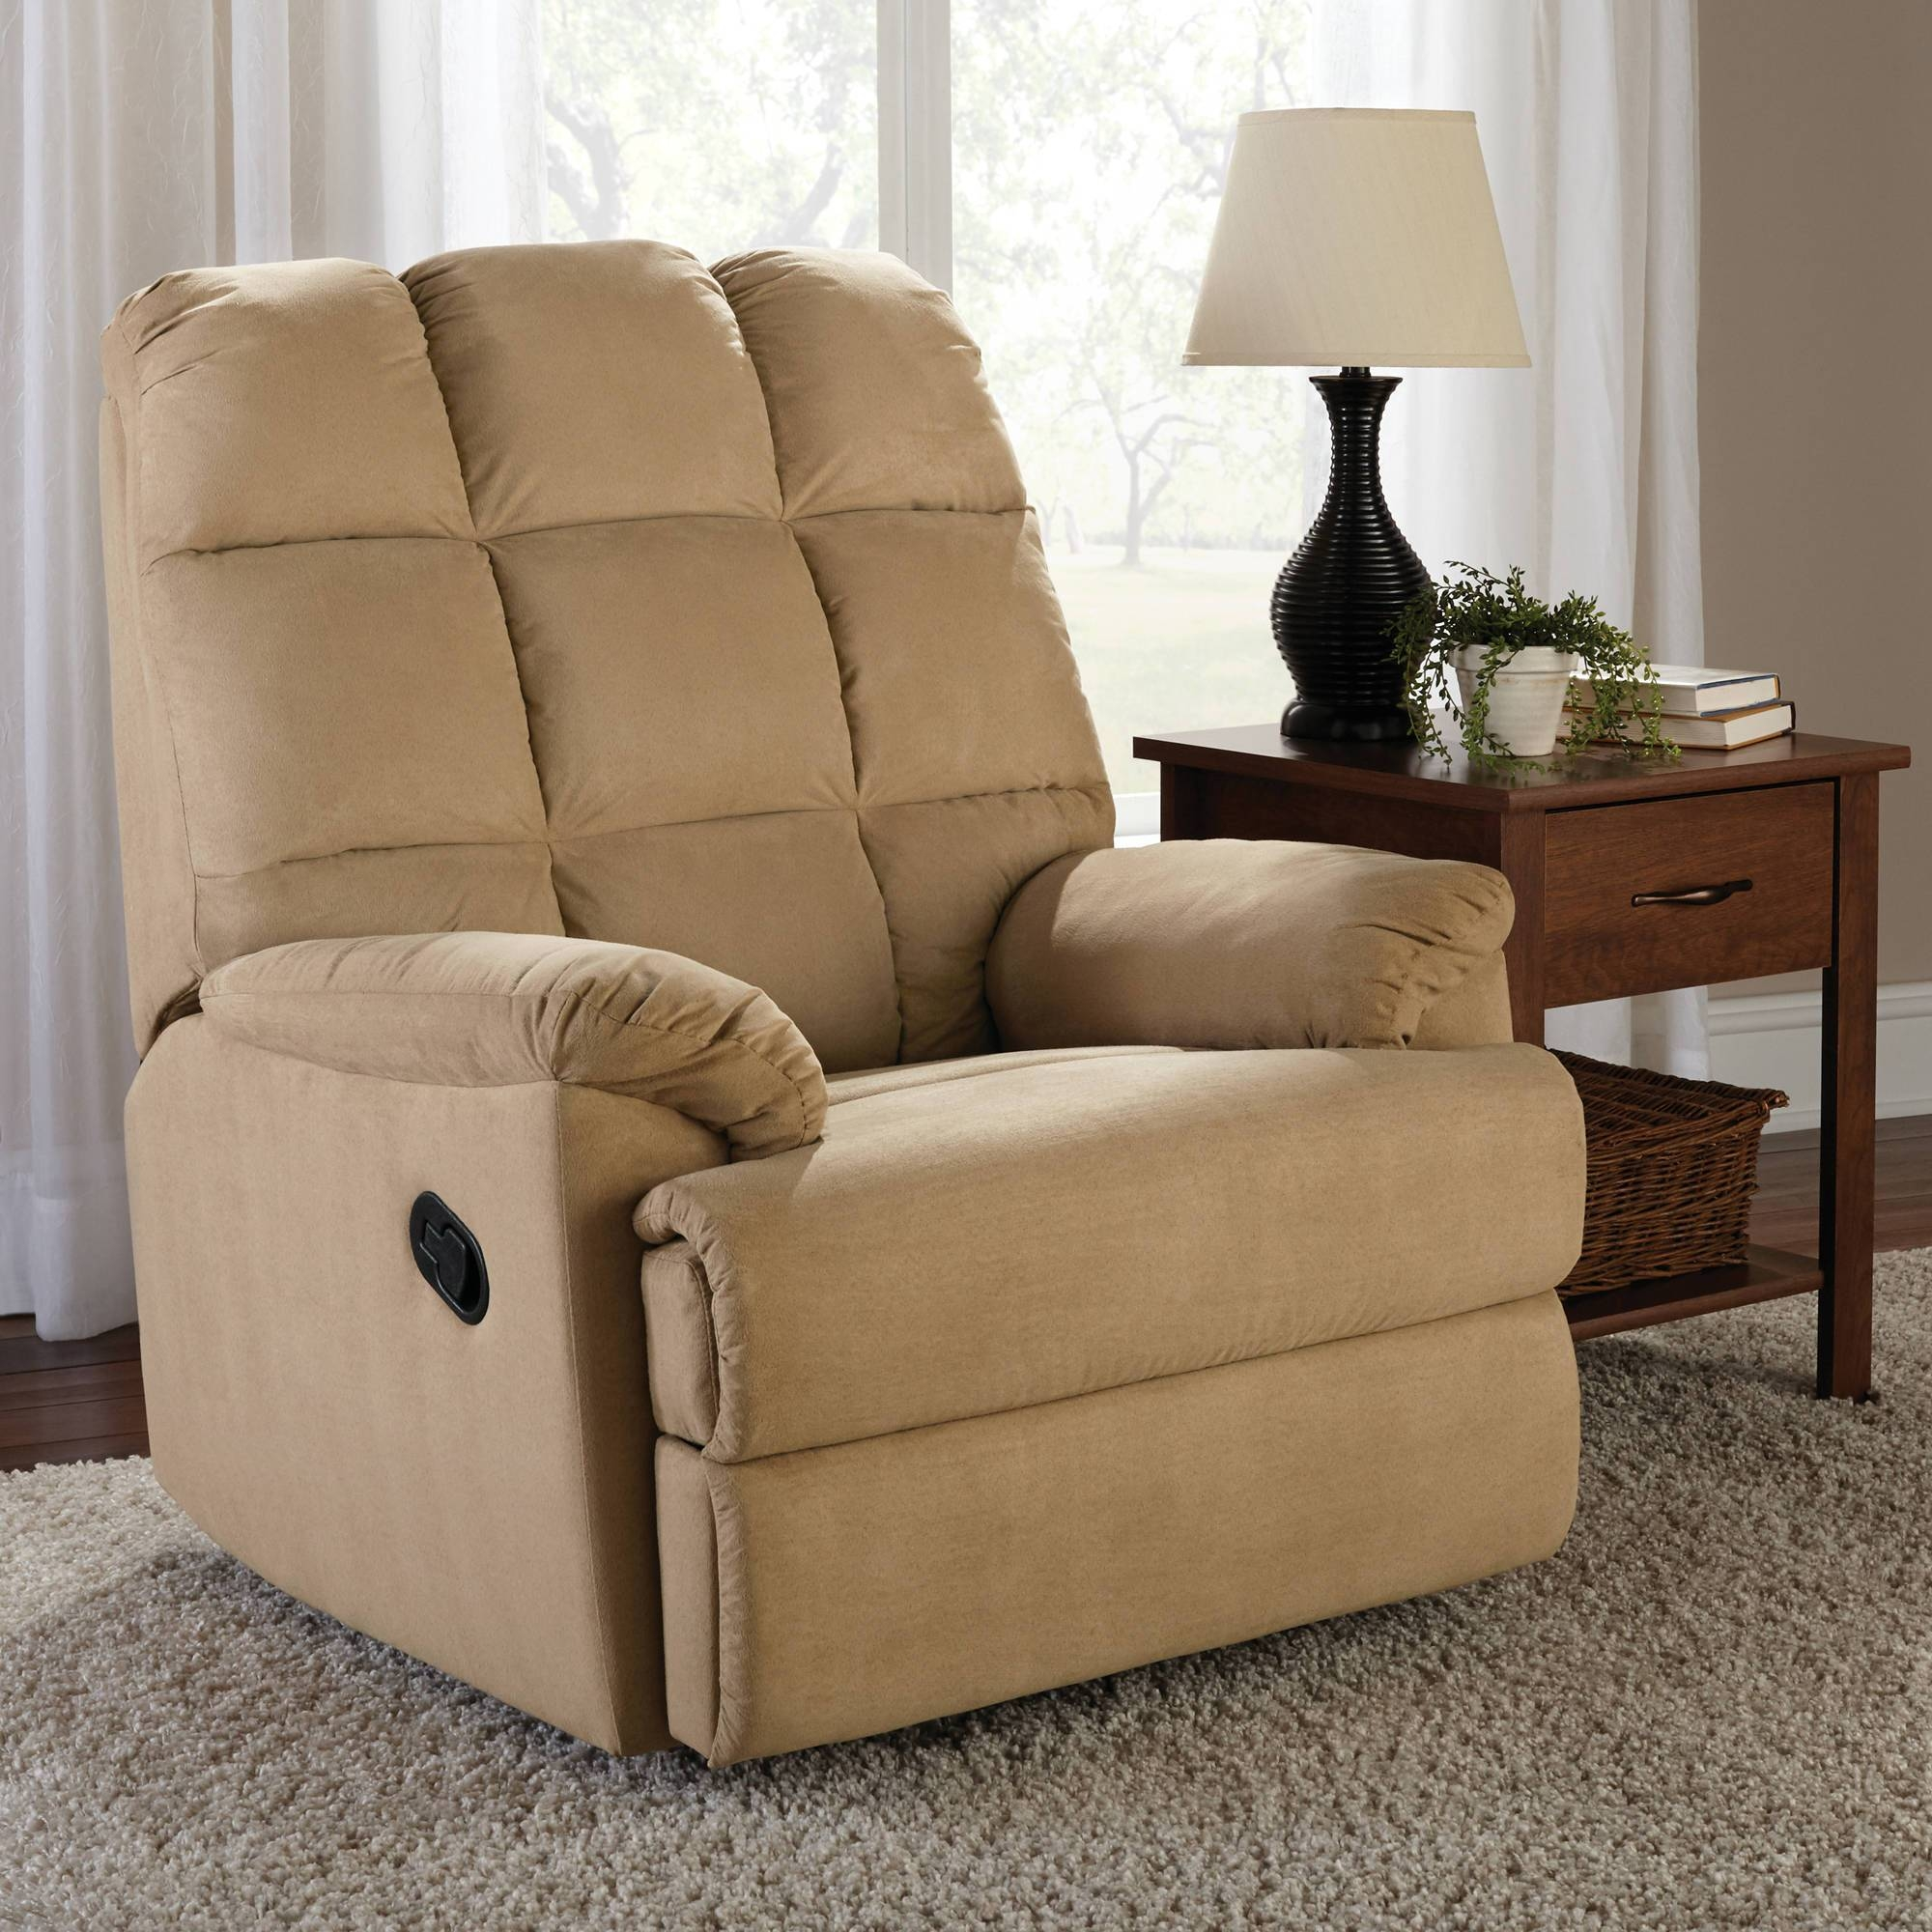 Recliners - Walmart with Sofa Rocking Chairs (Image 14 of 30)